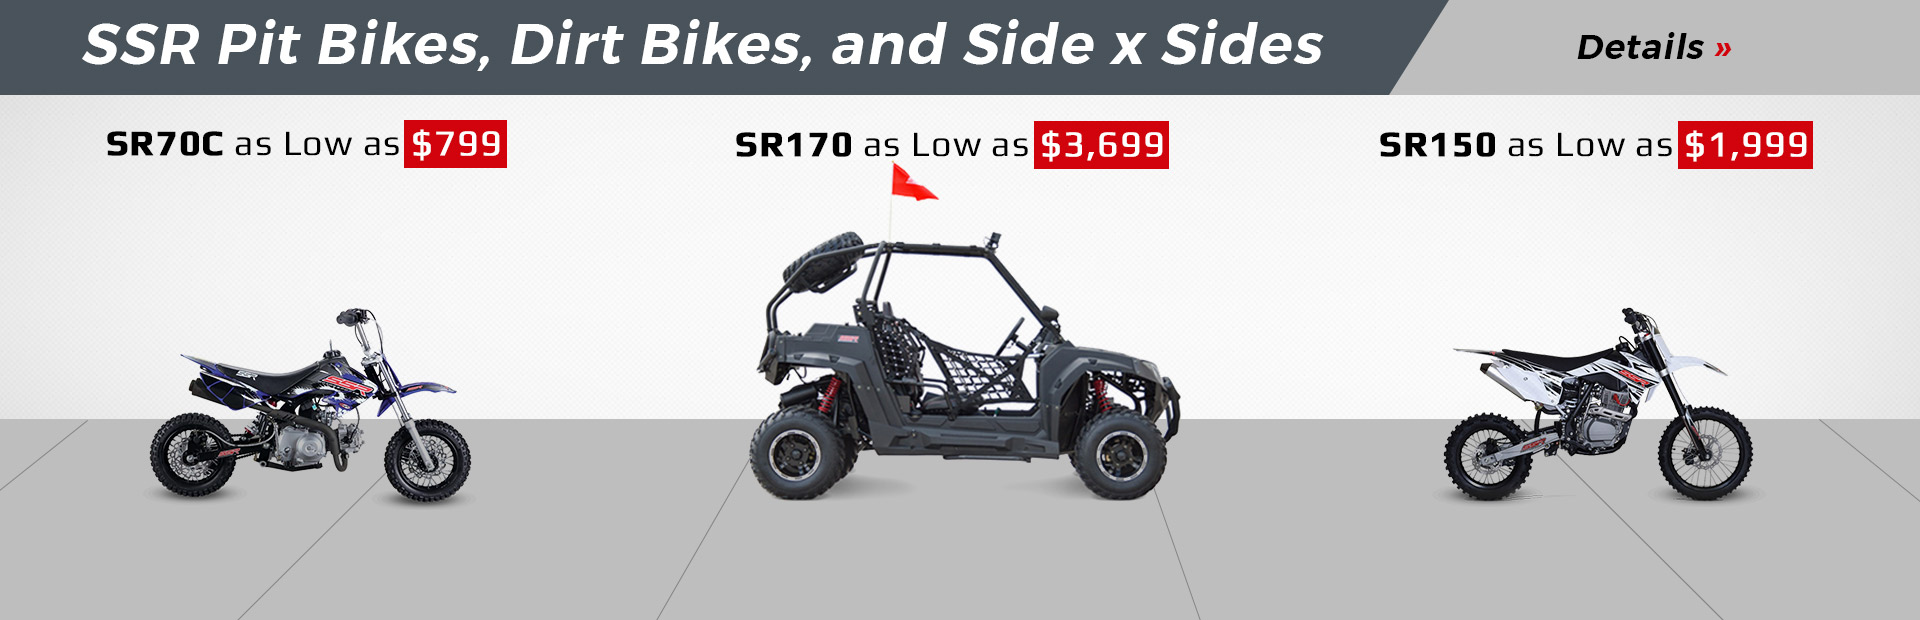 SSR Motorsports Pit Bike, Dirt Bike, and Side x Side Sales: Click here for details.